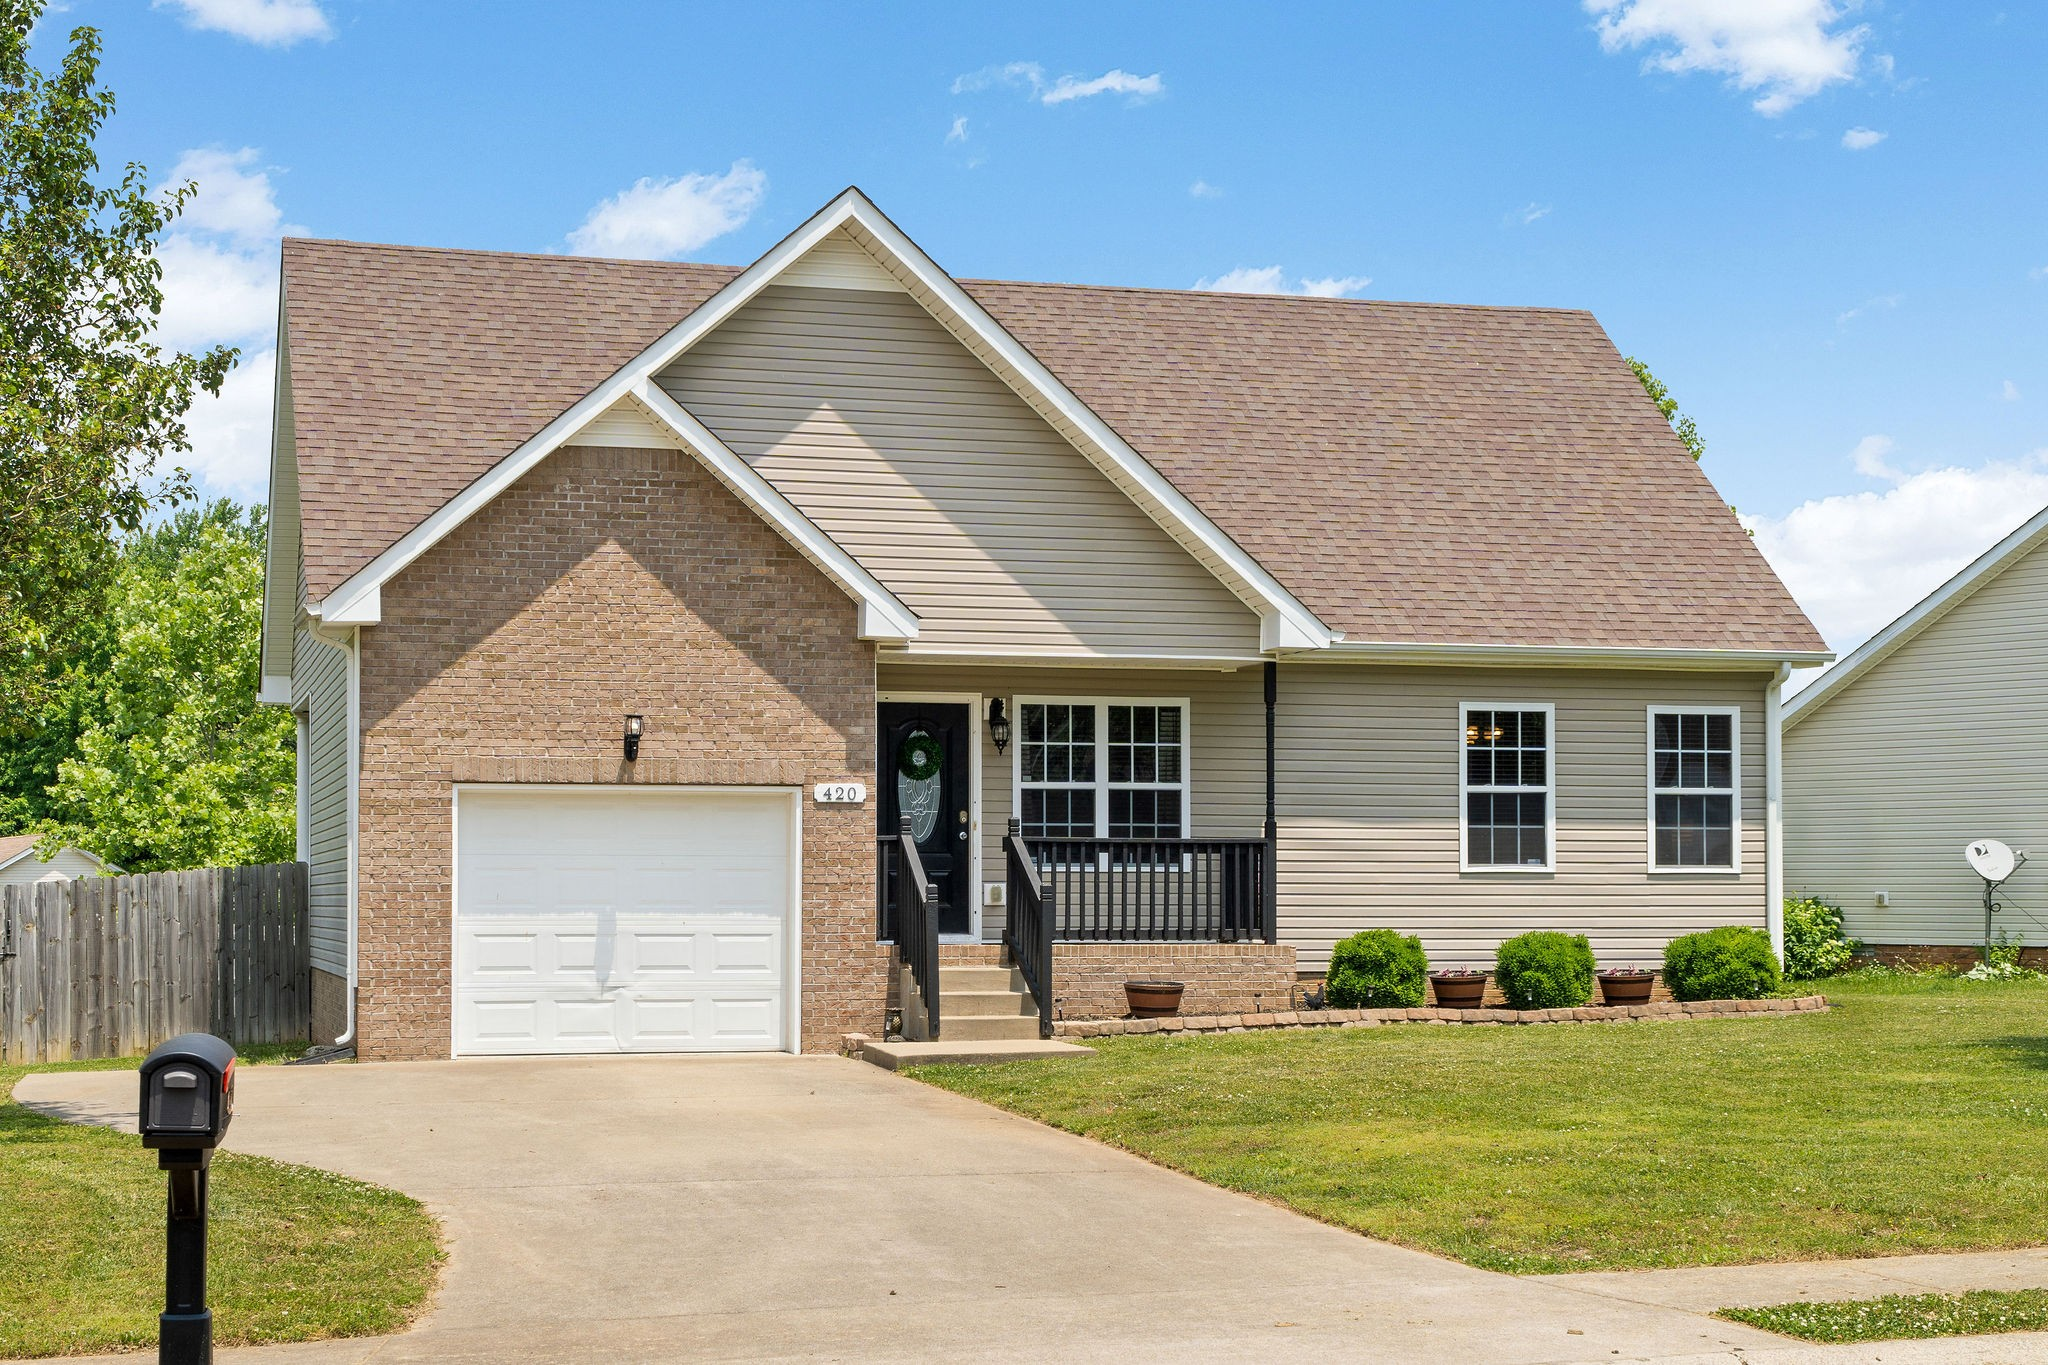 Check Out This Picture Perfect, 2 Story Home - All Kitchen Appliances Convey - Master Suite On Main Level - Covered Patio Overlooks the Privacy Fenced Backyard - Oversized 1 Car Garage - Close Proximity To Fort Campbell - MUST SEE!